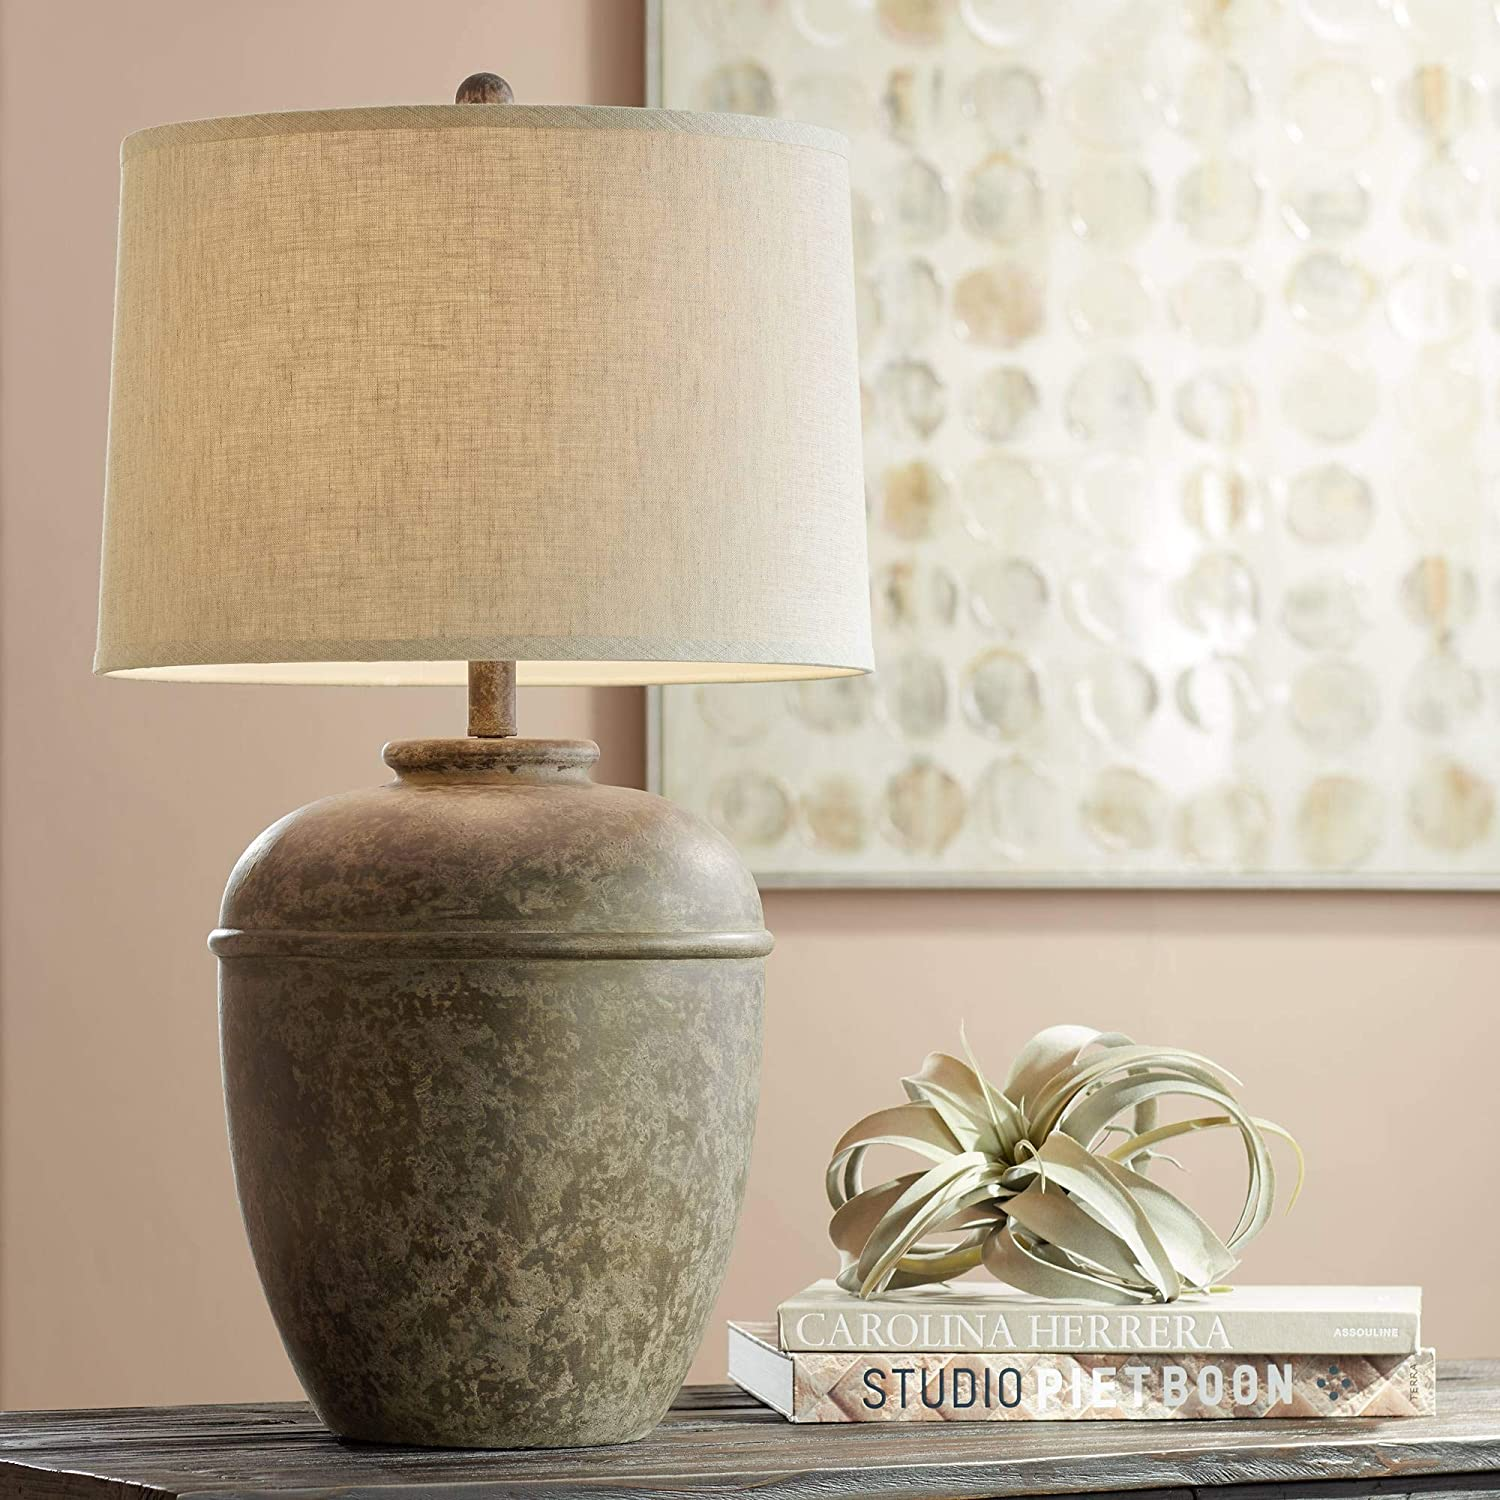 Otero Rustic Table Lamp Southwest Style Faux Mottled Stone Cream Linen Drum Shade for Living Room Bedroom Bedside Nightstand Office Family - John Timberland